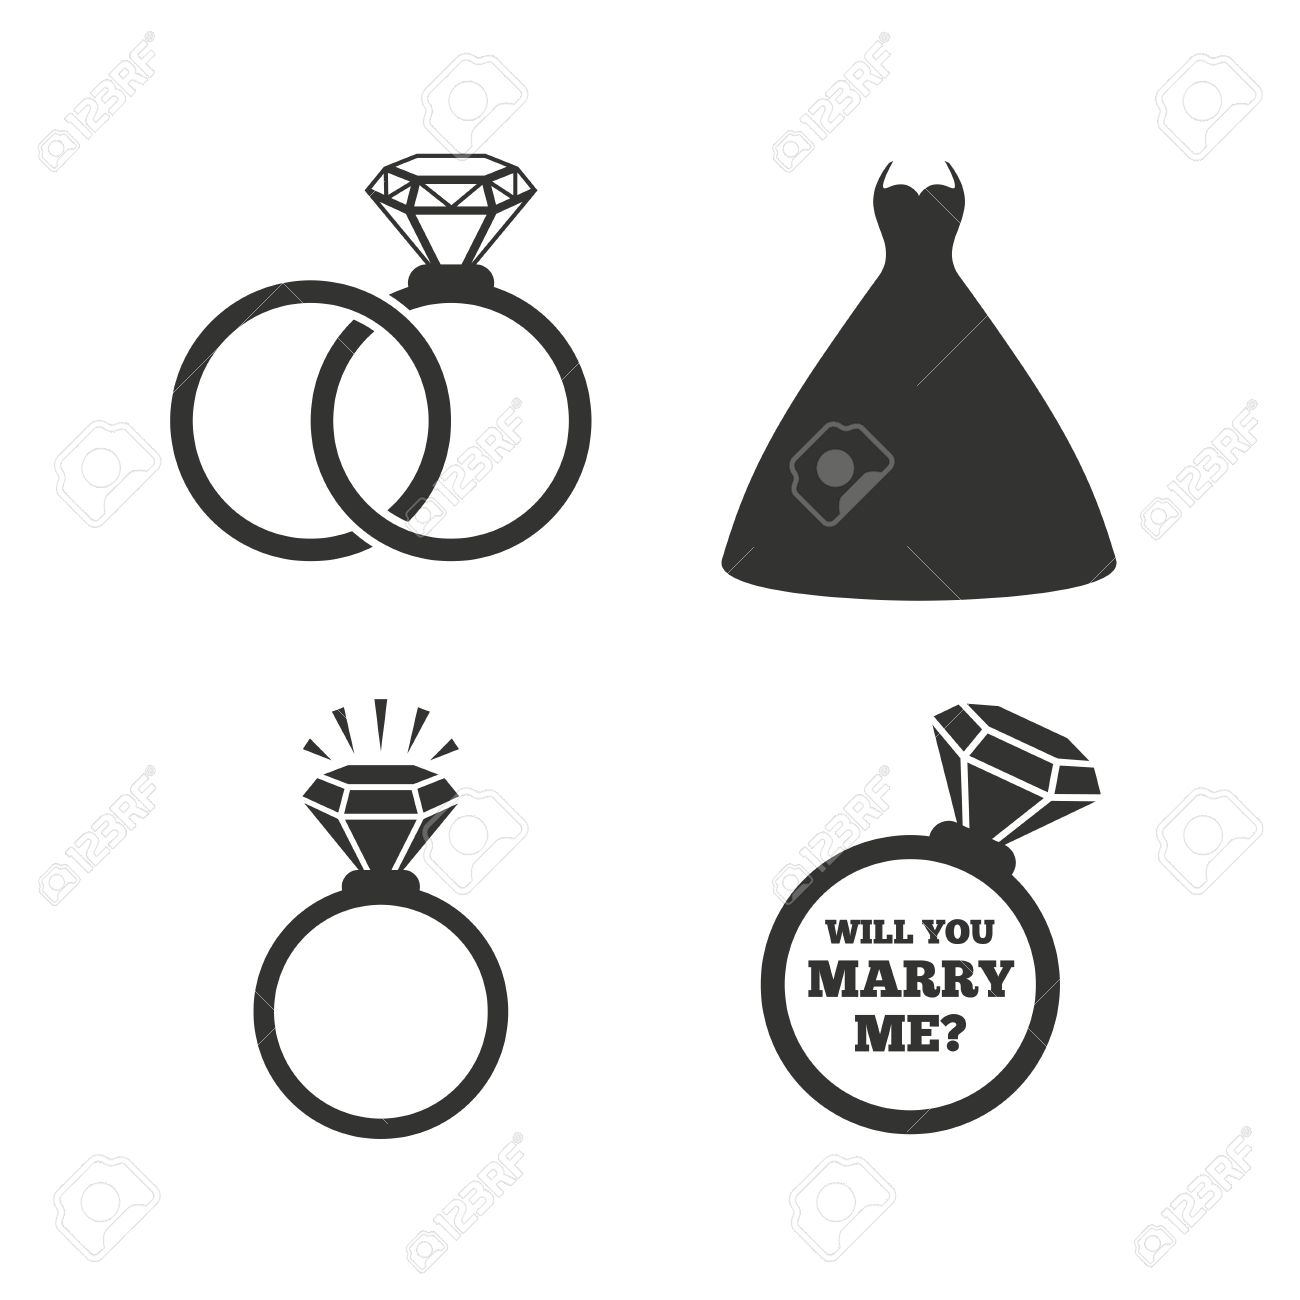 Vector Wedding Dress Icon Bride And Groom Rings Symbol Or Engagement Day Ring Shine With Diamond Sign Will You Marry Me Flat Icons On White: Icon Wedding Ring Bride At Reisefeber.org